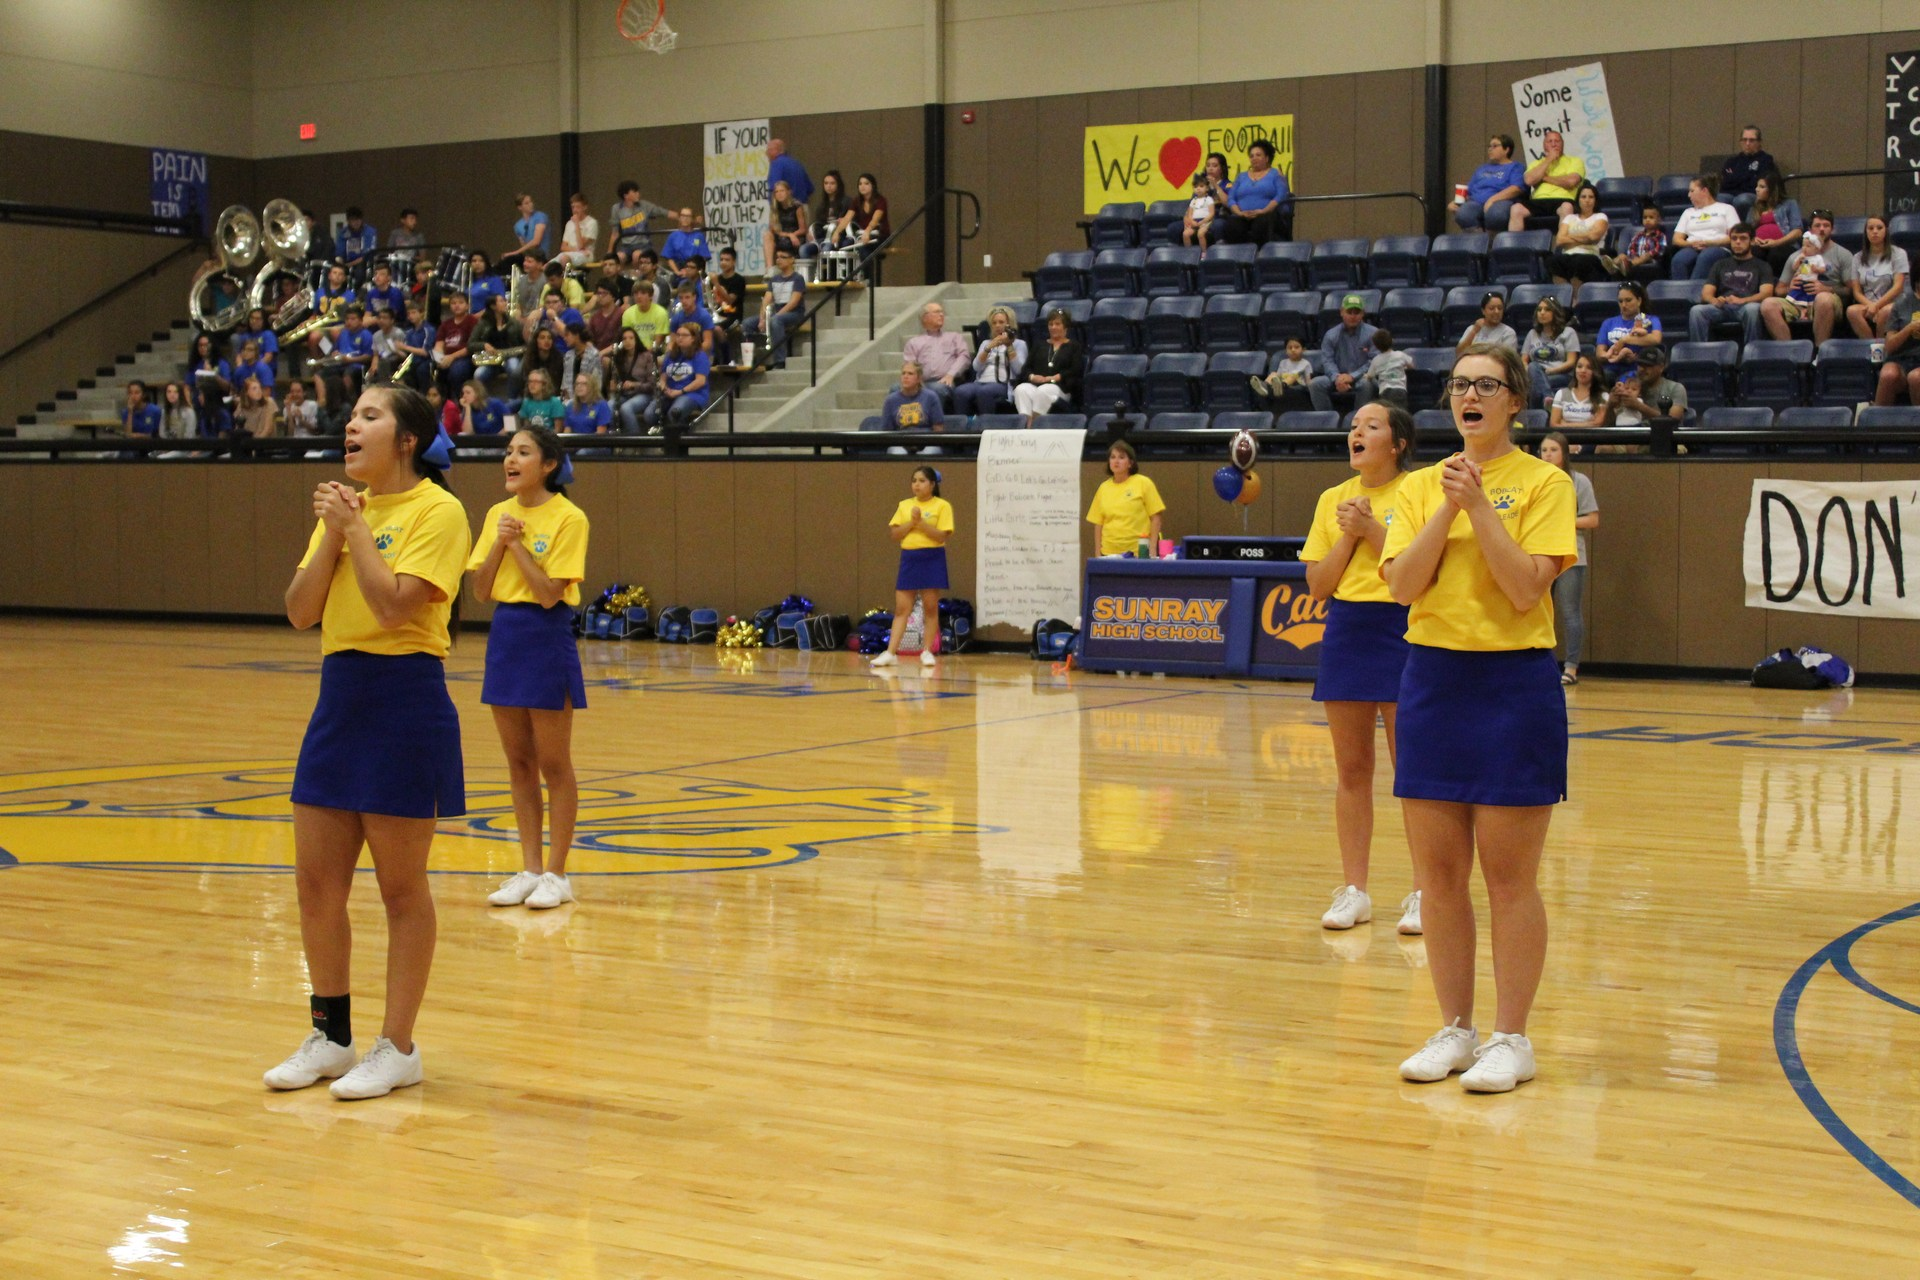 Varsity Cheerleaders at the Pep Rally